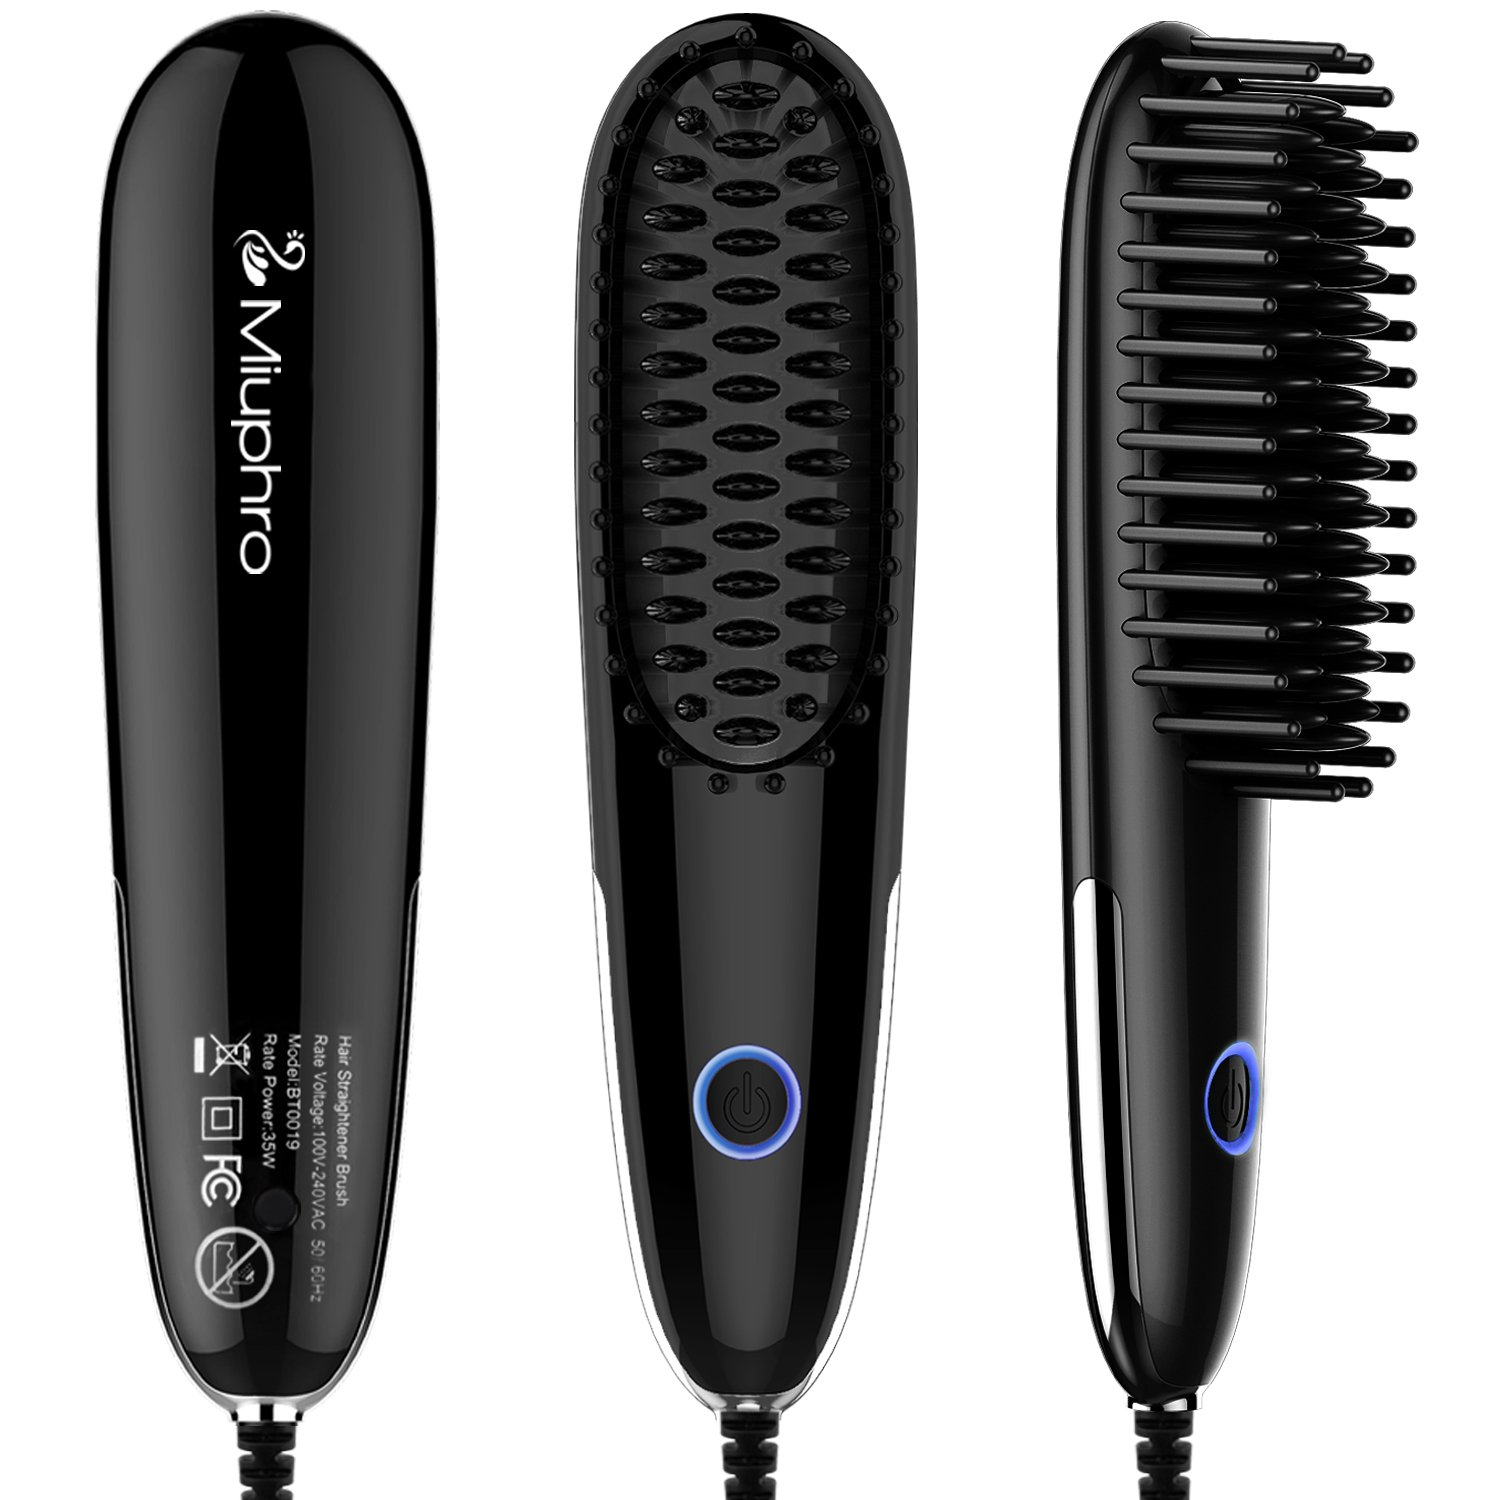 Miuphro Mini Hair Straightener Brush, Suitable for Various Hairstyles & People, Portable Lightweight+Adjustable Temperature Fast Heating Hair Straightening Brush, Auto Shut Off + Anti Scald&Frizz Comb